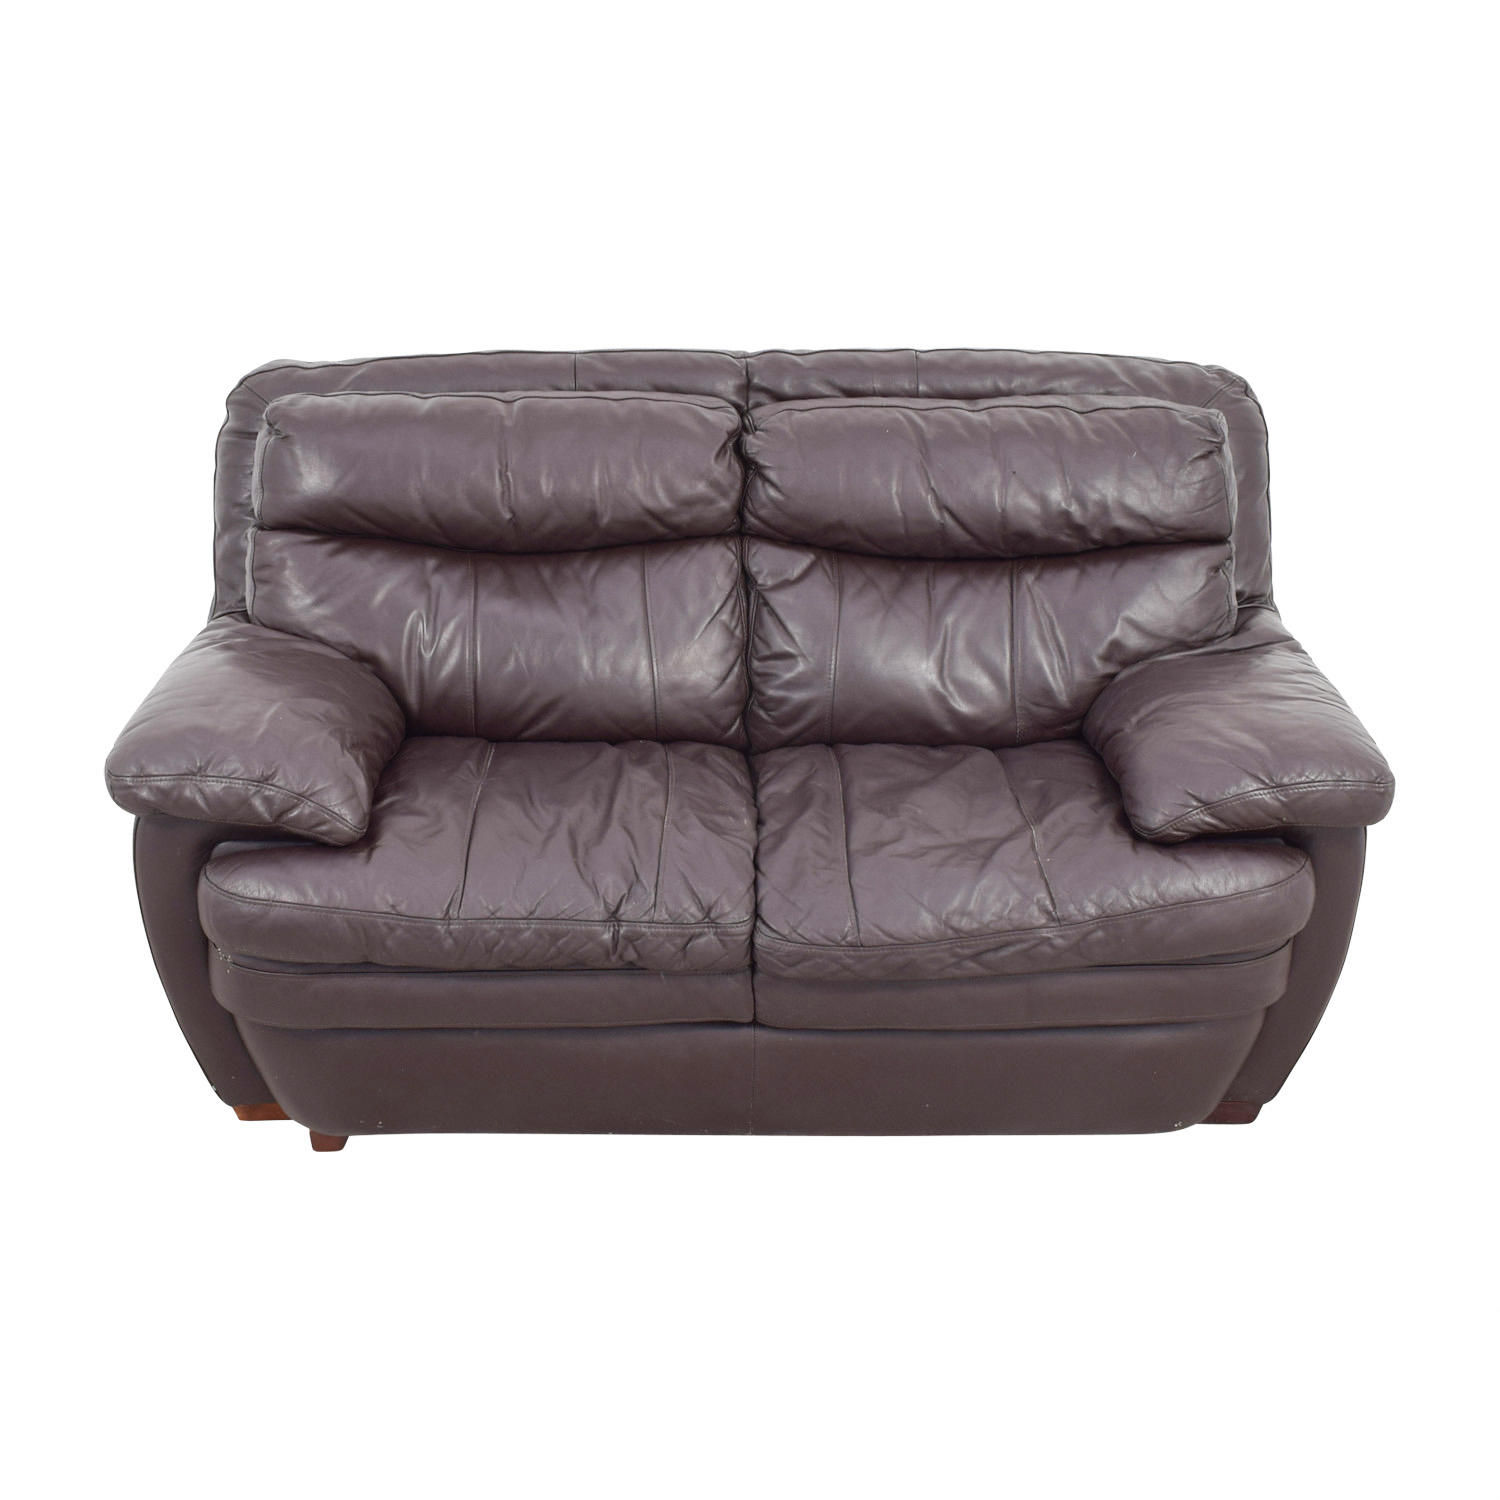 Bobs Furniture Brown Leather Loveseat sale